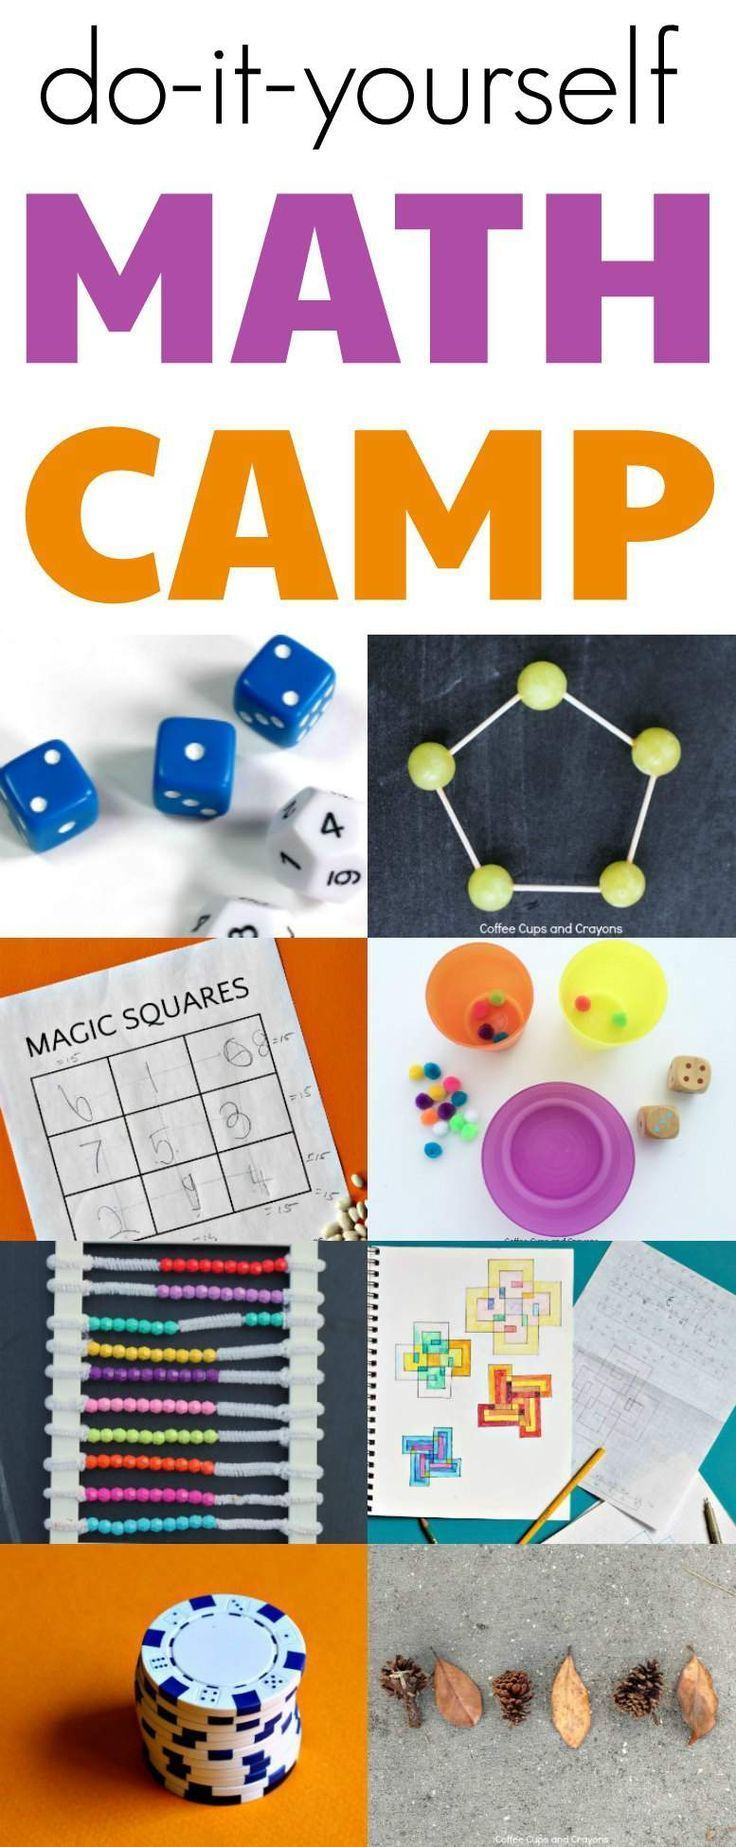 Complete activity lesson plans for a budget friendly fun diy summer complete activity lesson plans for a budget friendly fun diy summer math camp for kids solutioingenieria Images